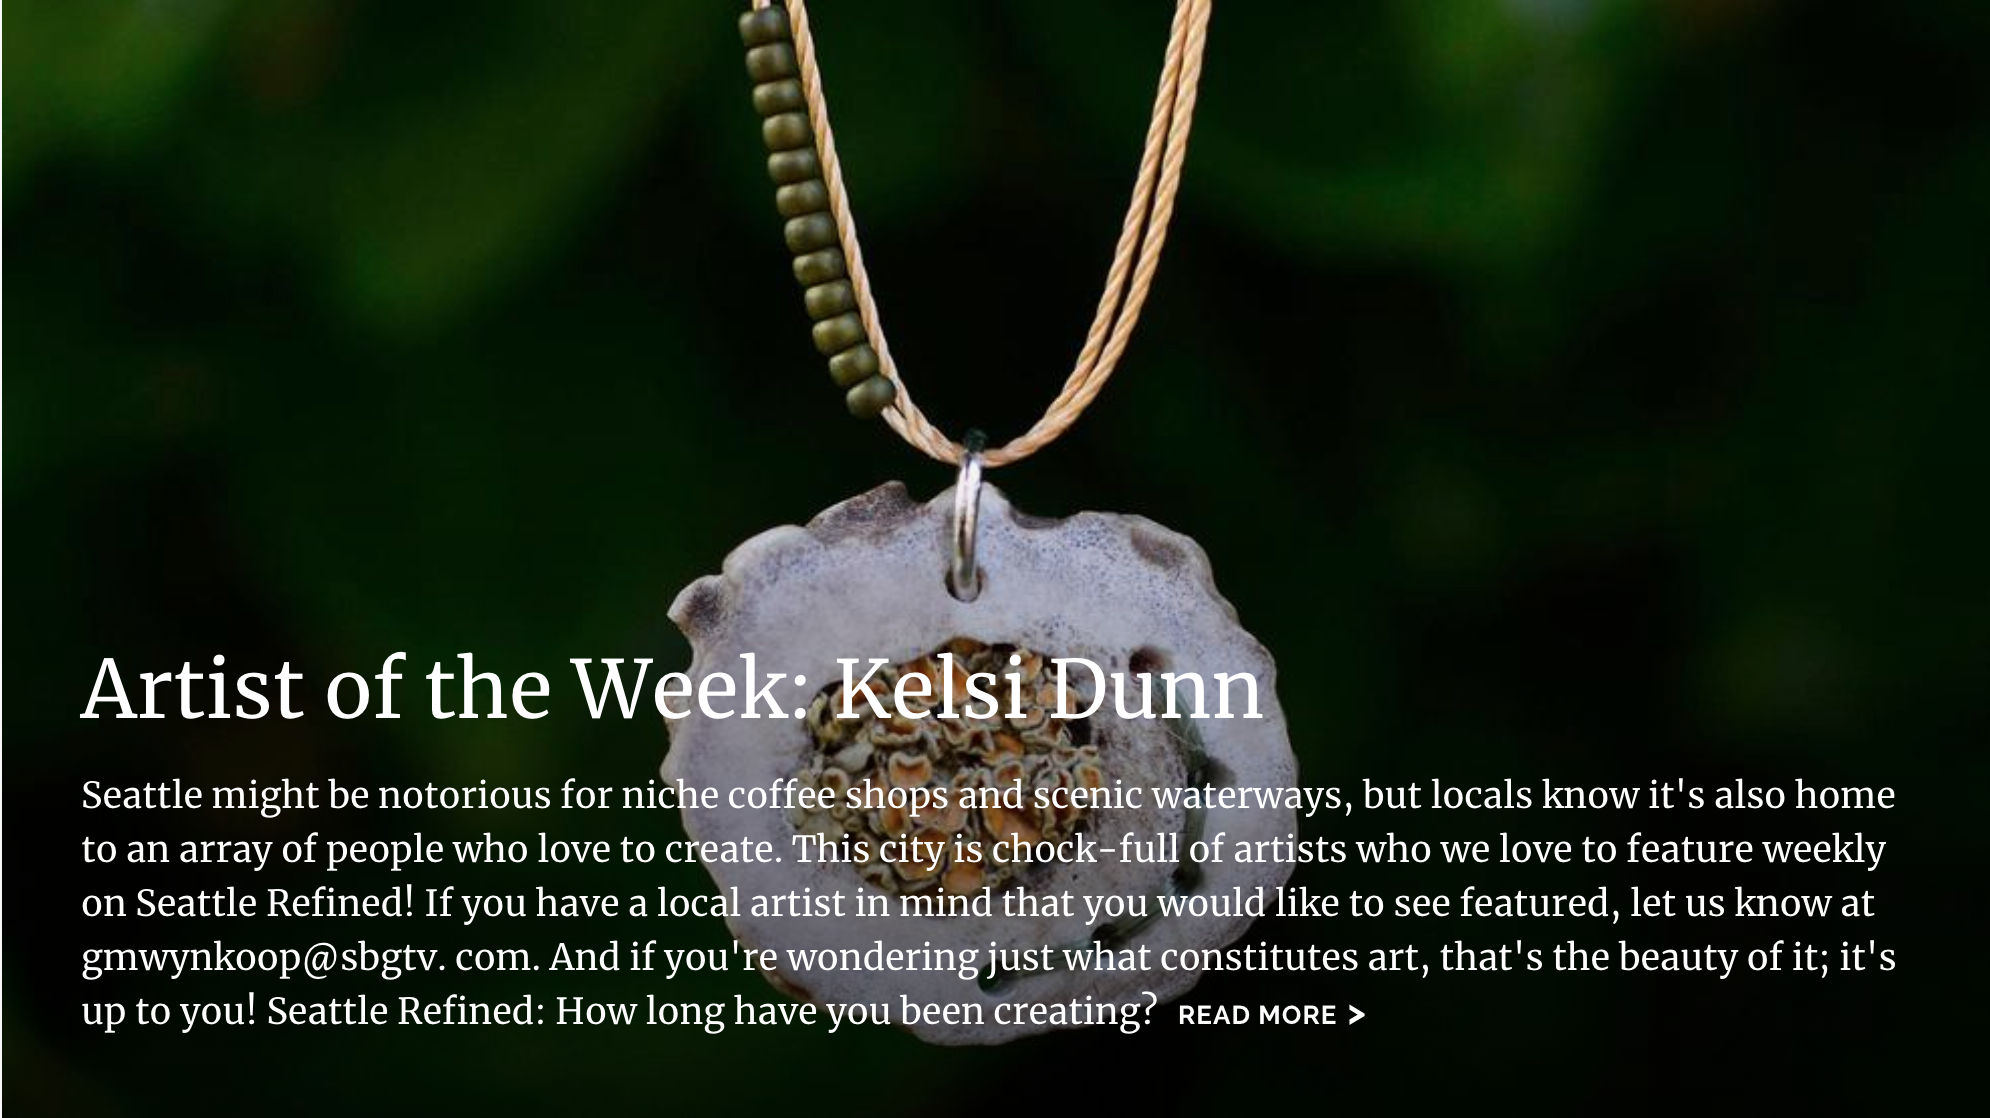 Seattle Refined Artist of the Week - May 2019. Online edition.Artist of the Week: Kelsi Dunn